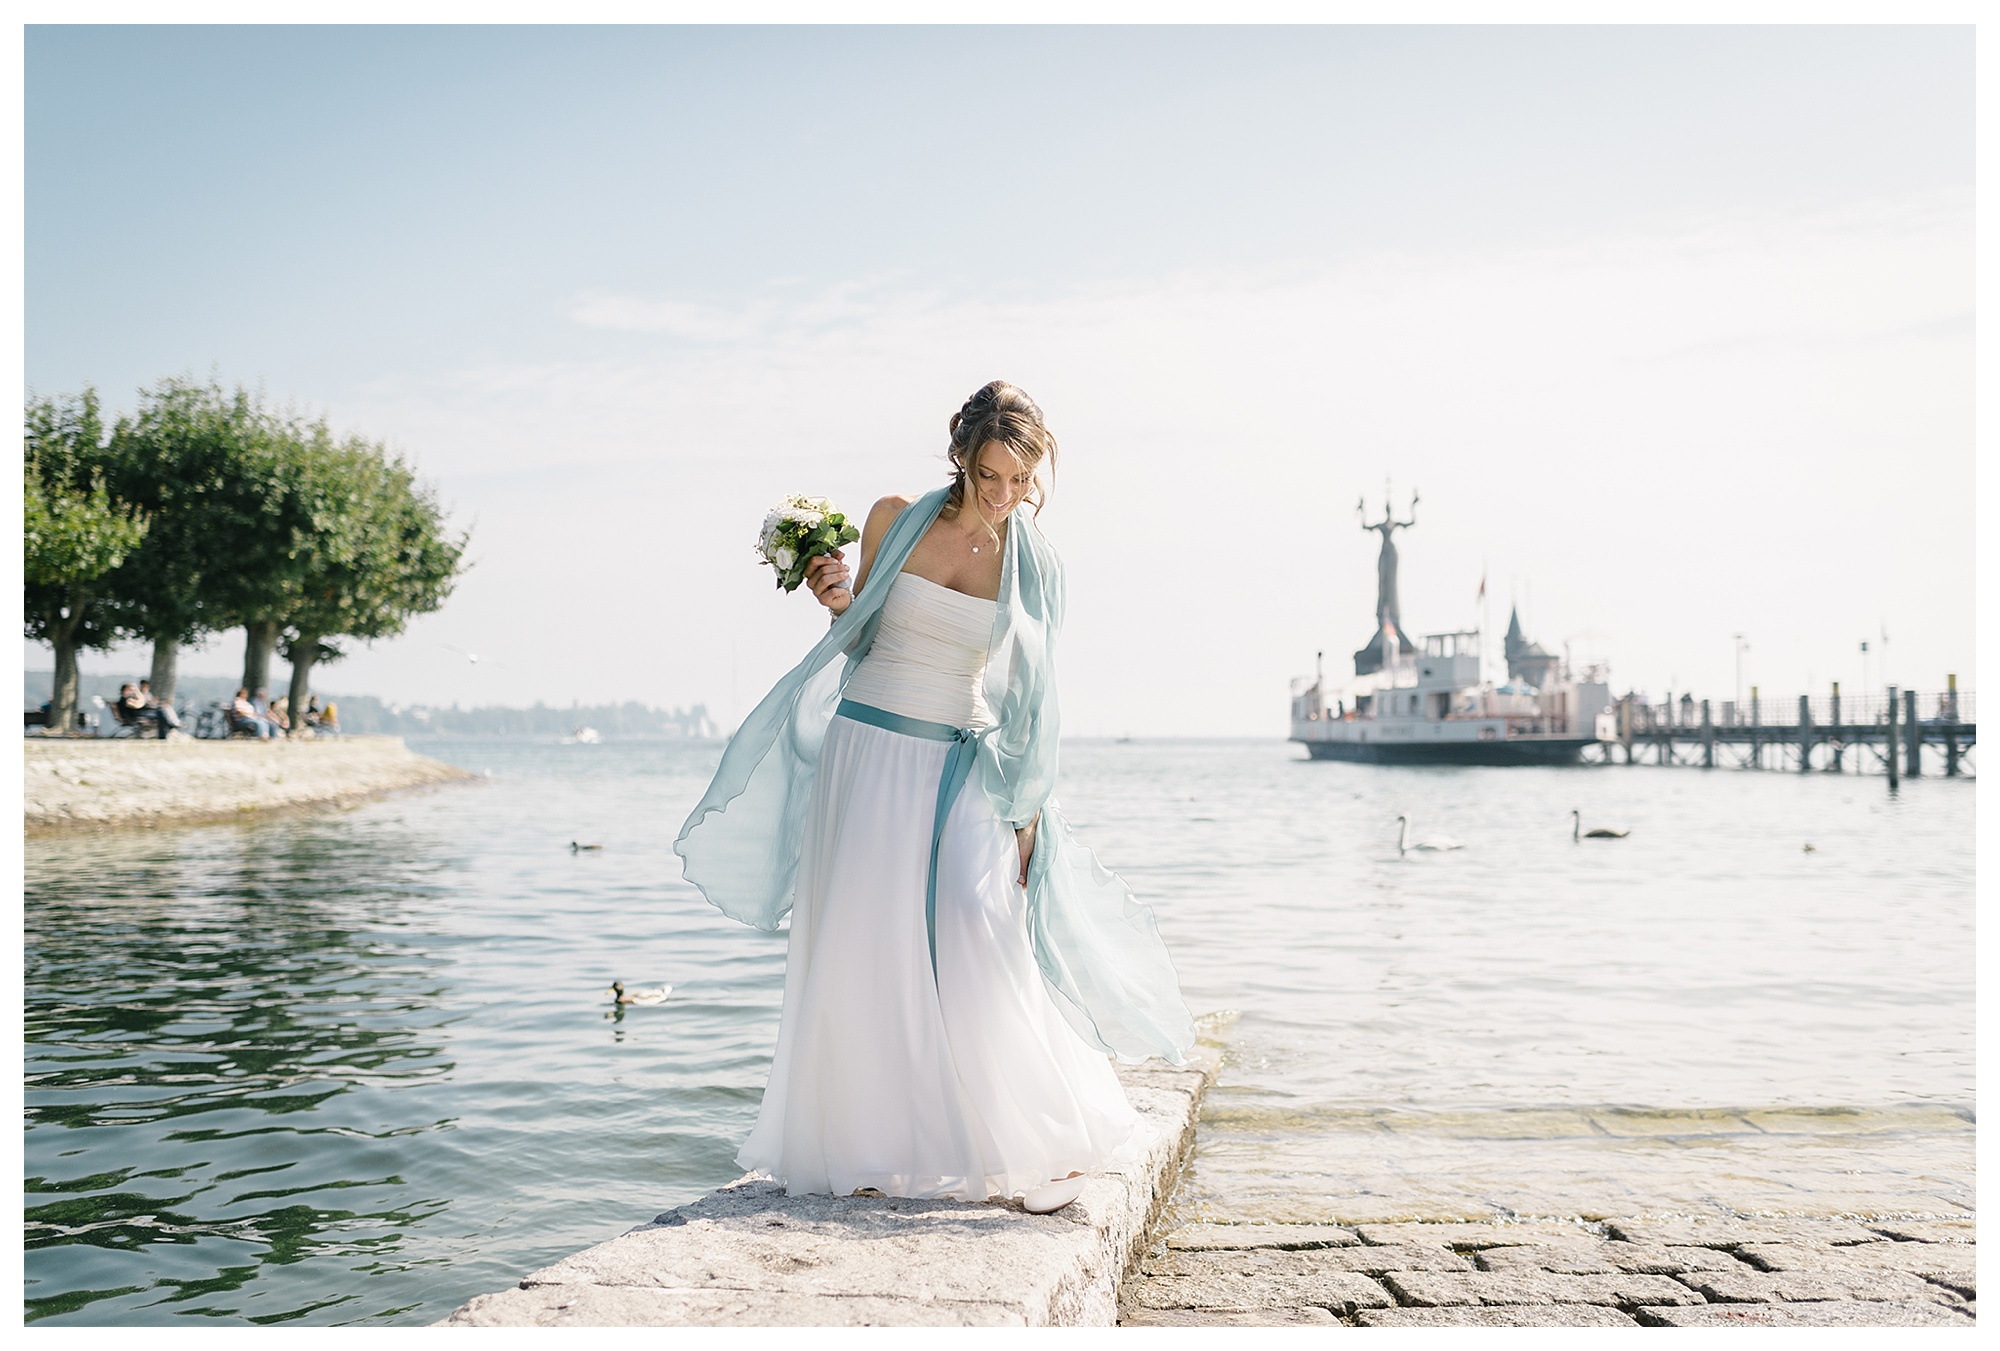 Fotograf Konstanz - Hochzeitsreportage Konstanz Raphael Nicole Elmar Feuerbacher Photography Hochzeit Portrait 22 - Wedding in Constance at Lake of Constance  - 36 -